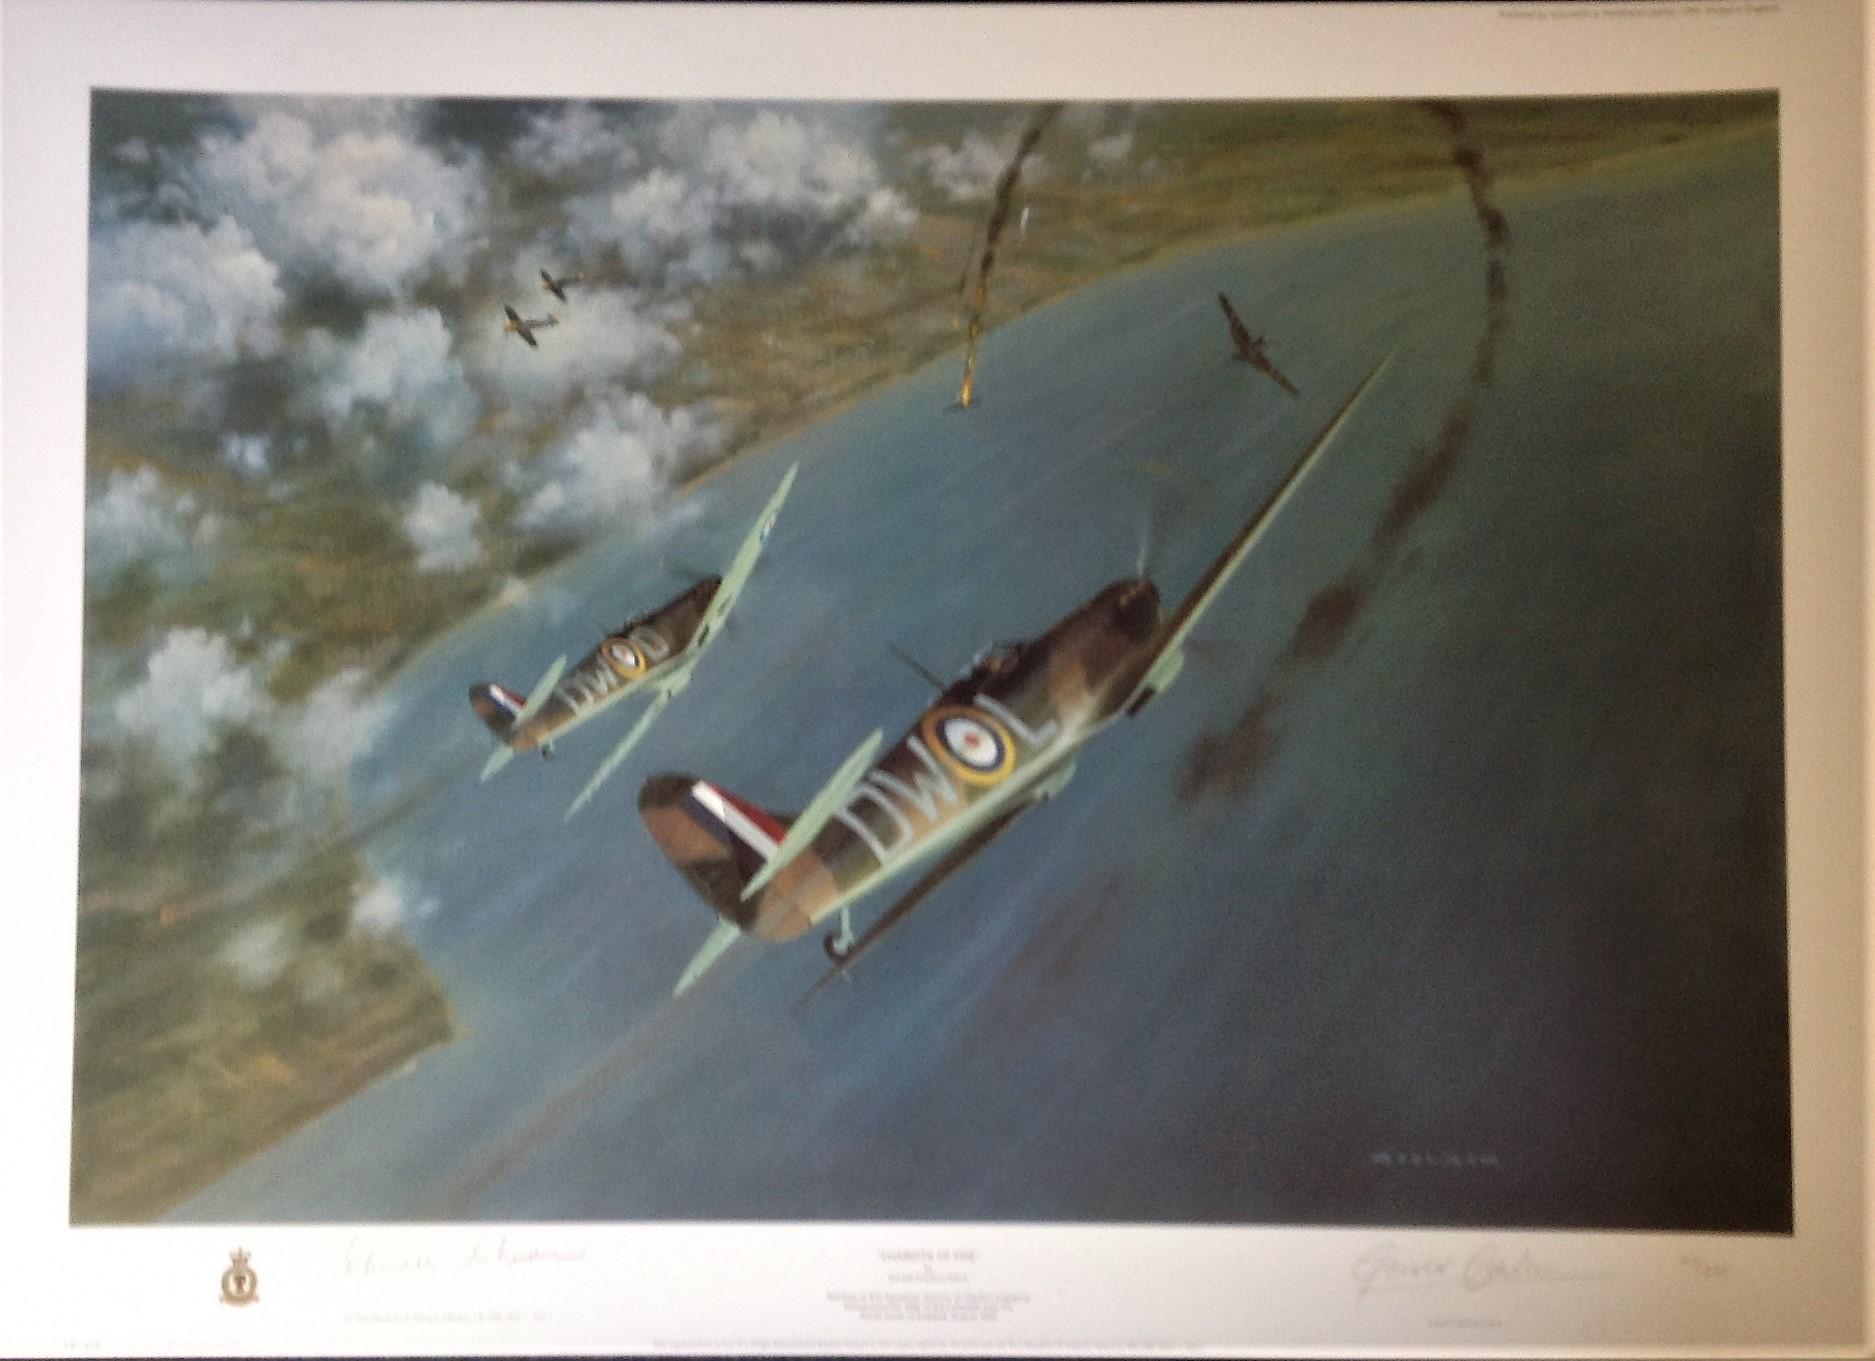 Battle of Britain Print 22x30 titled Chariots of Fire signed in pencil by the artist Gerald